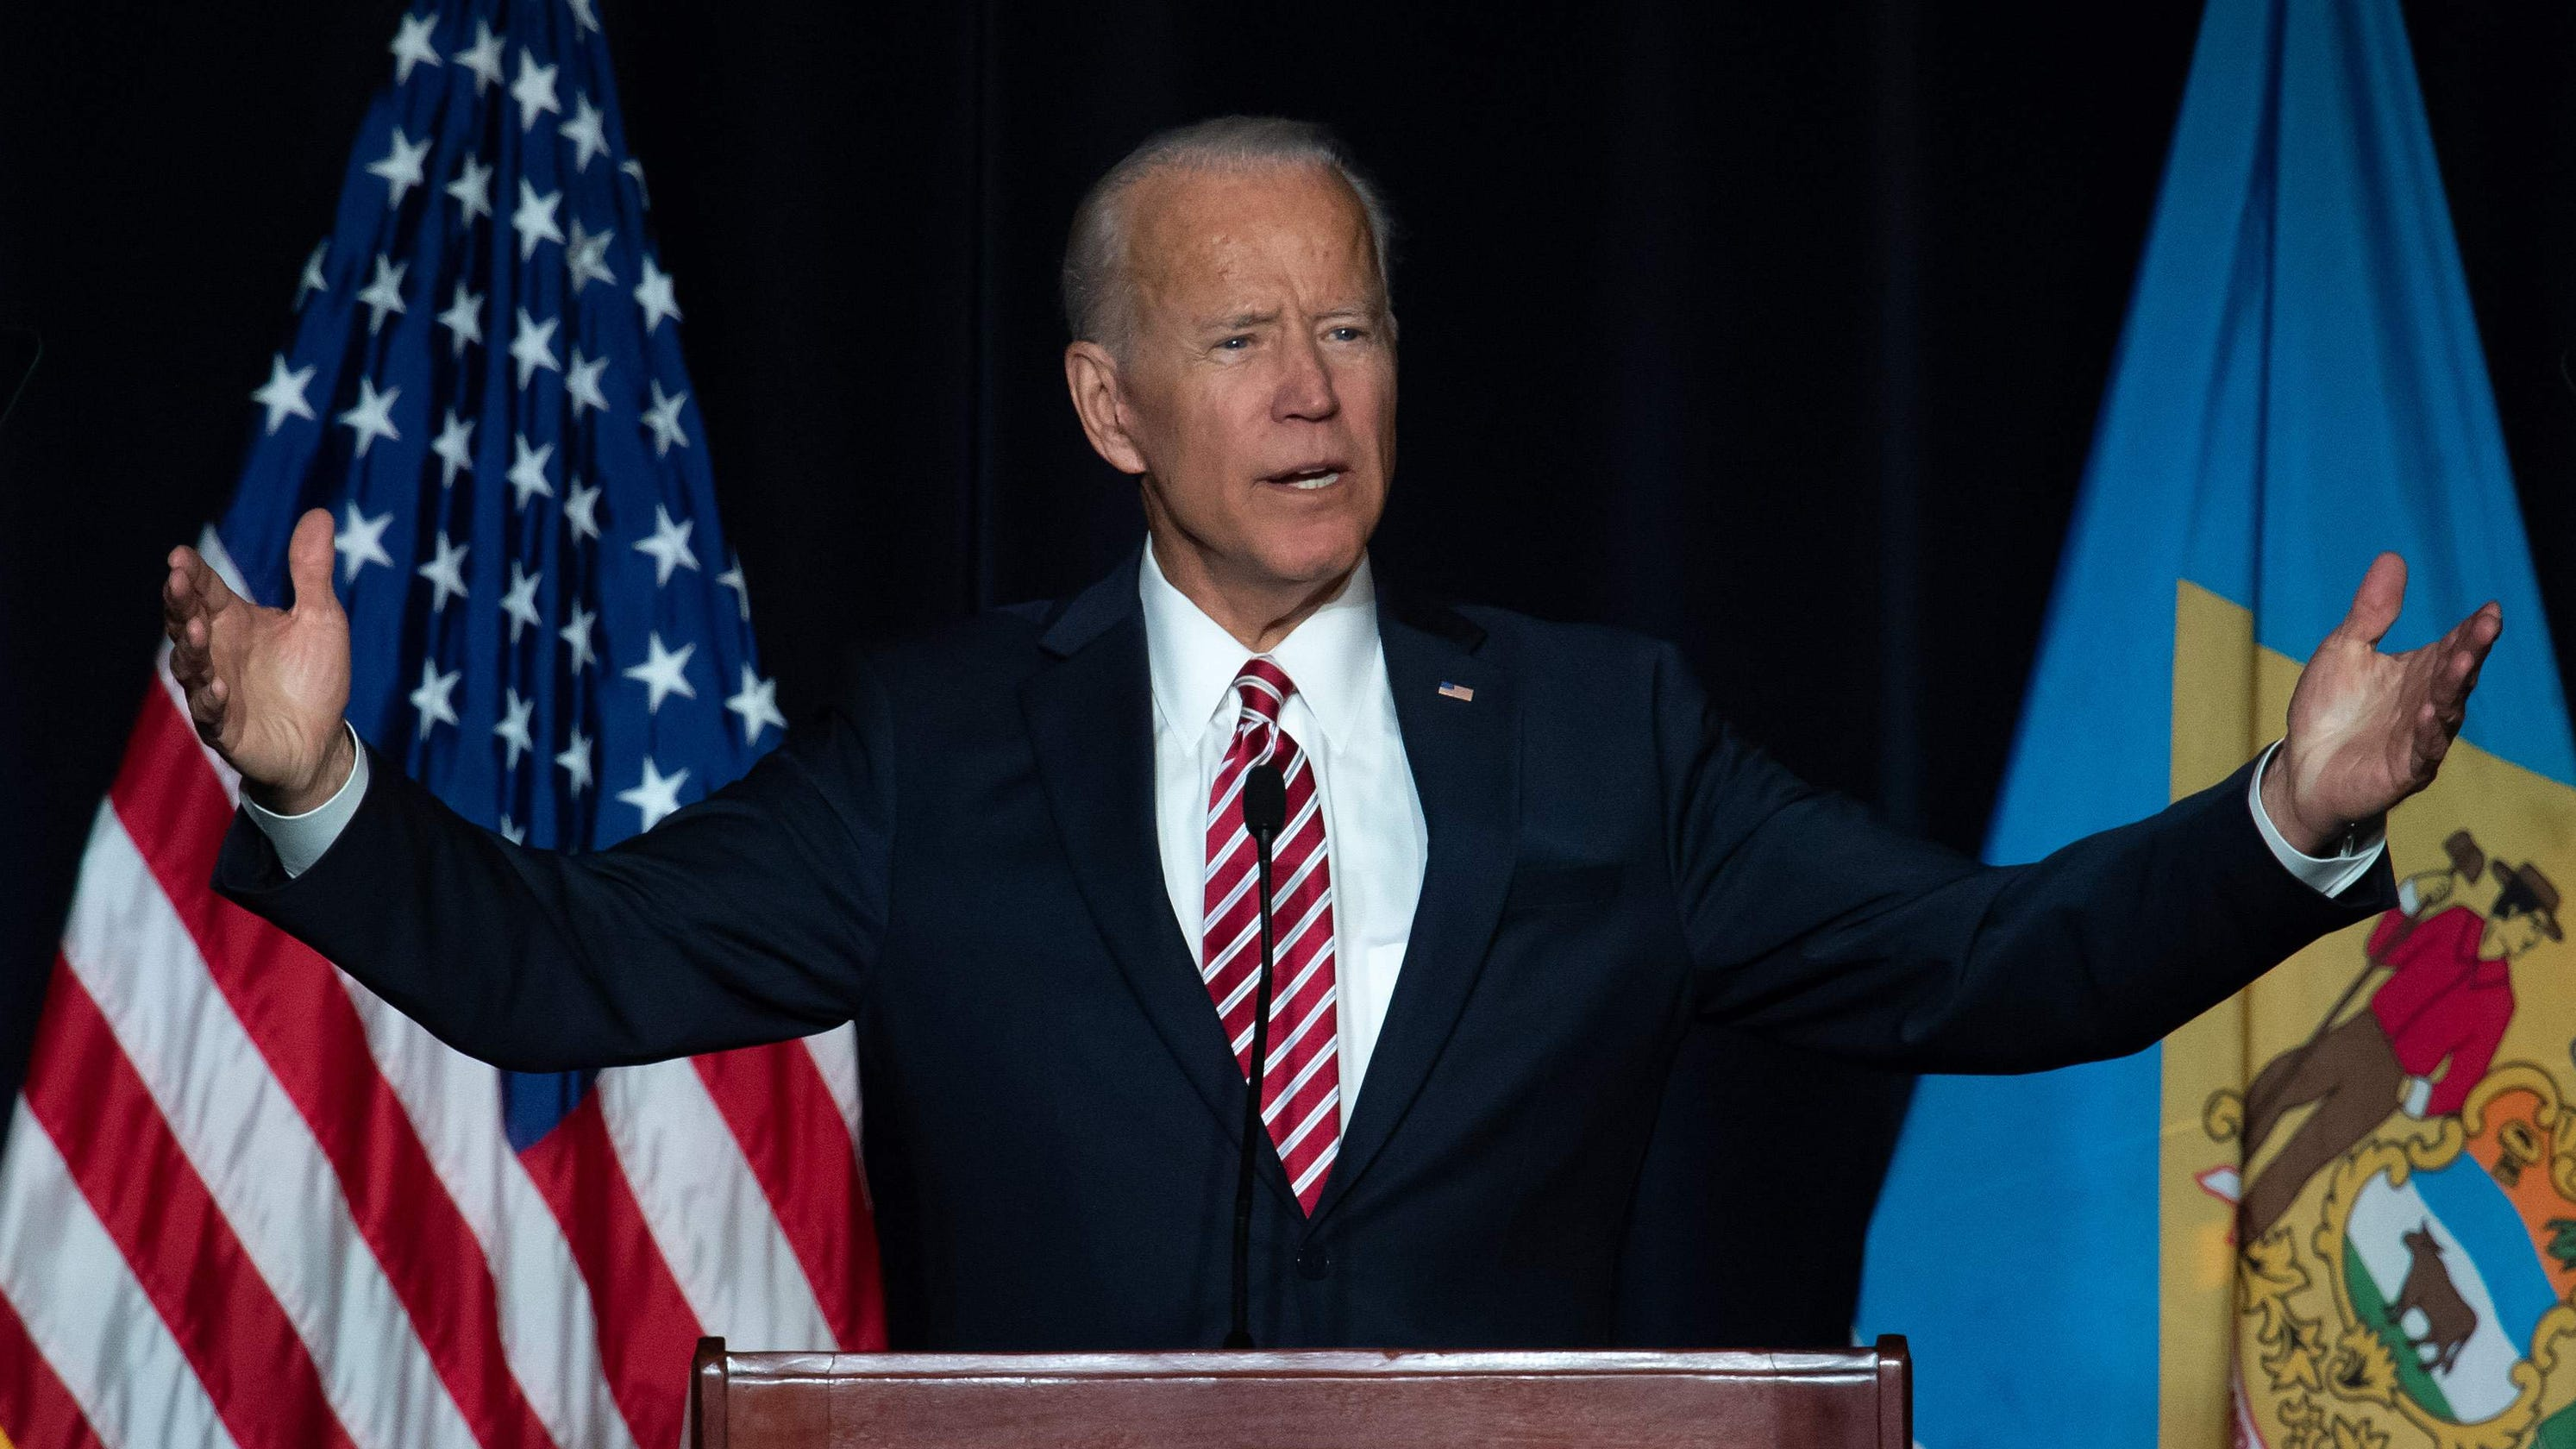 Biden leads Trump by 7 percentage points in hypothetical 2020 matchup, poll finds